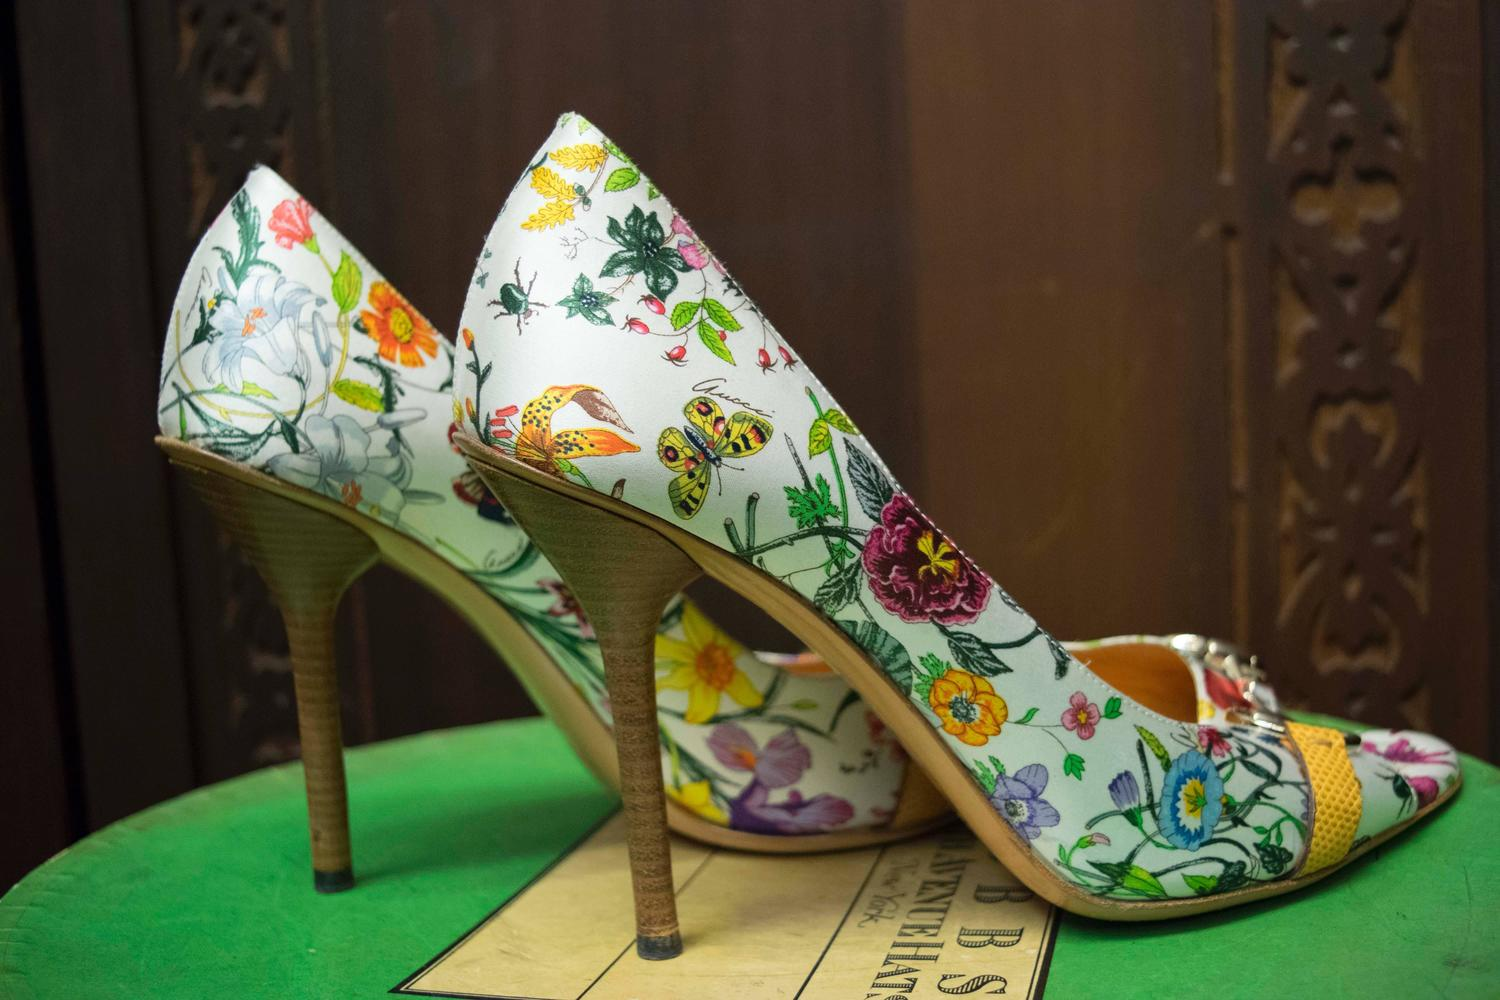 Gucci Floral Peep Toe High Heels For Sale At 1stdibs